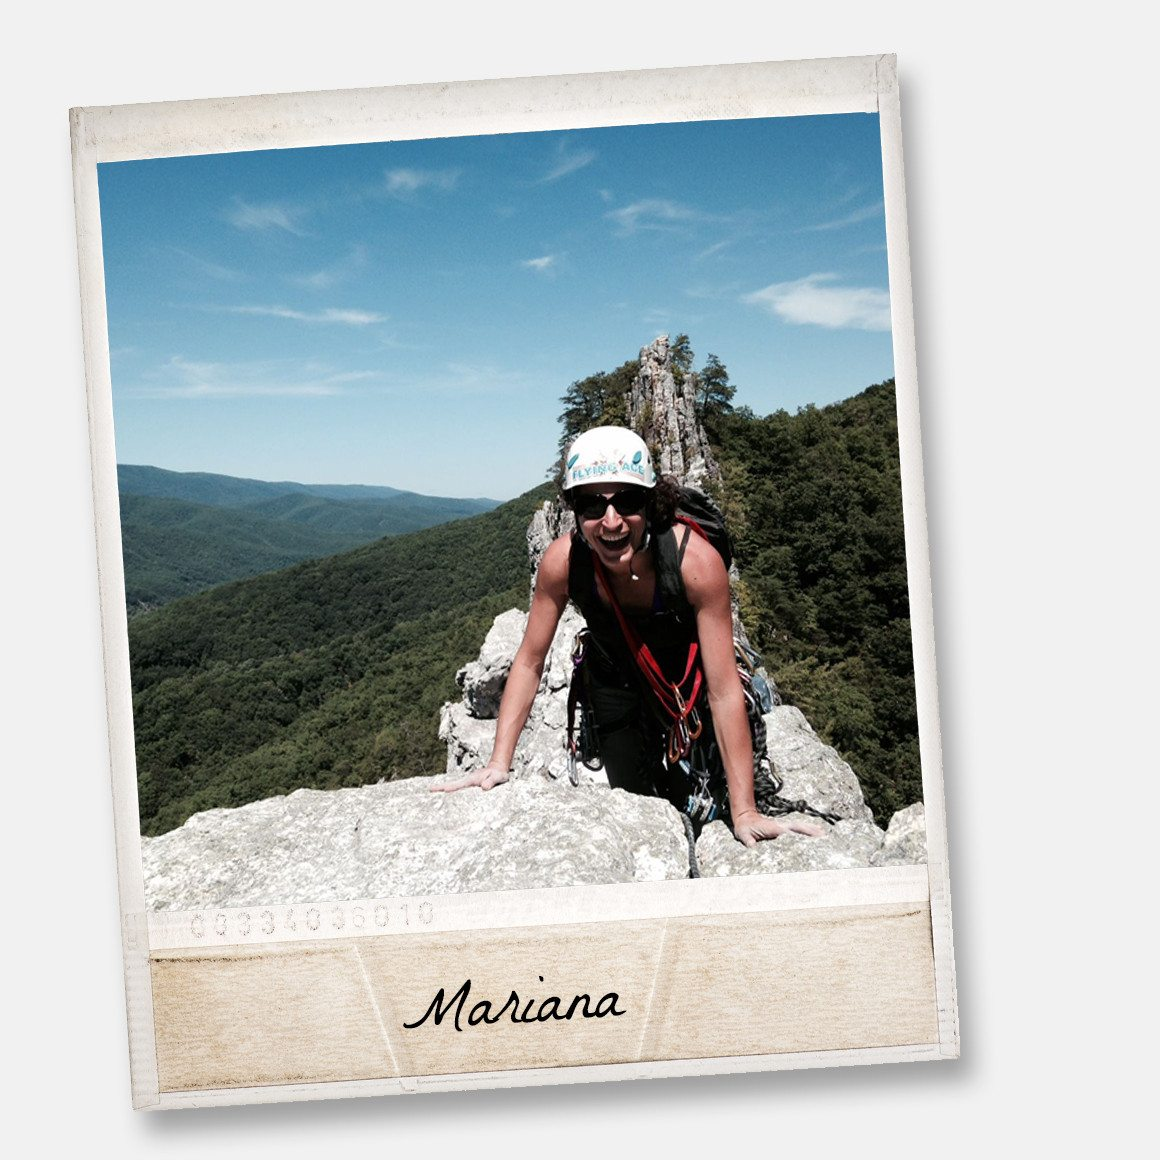 Mariana climbing at seneca rocks